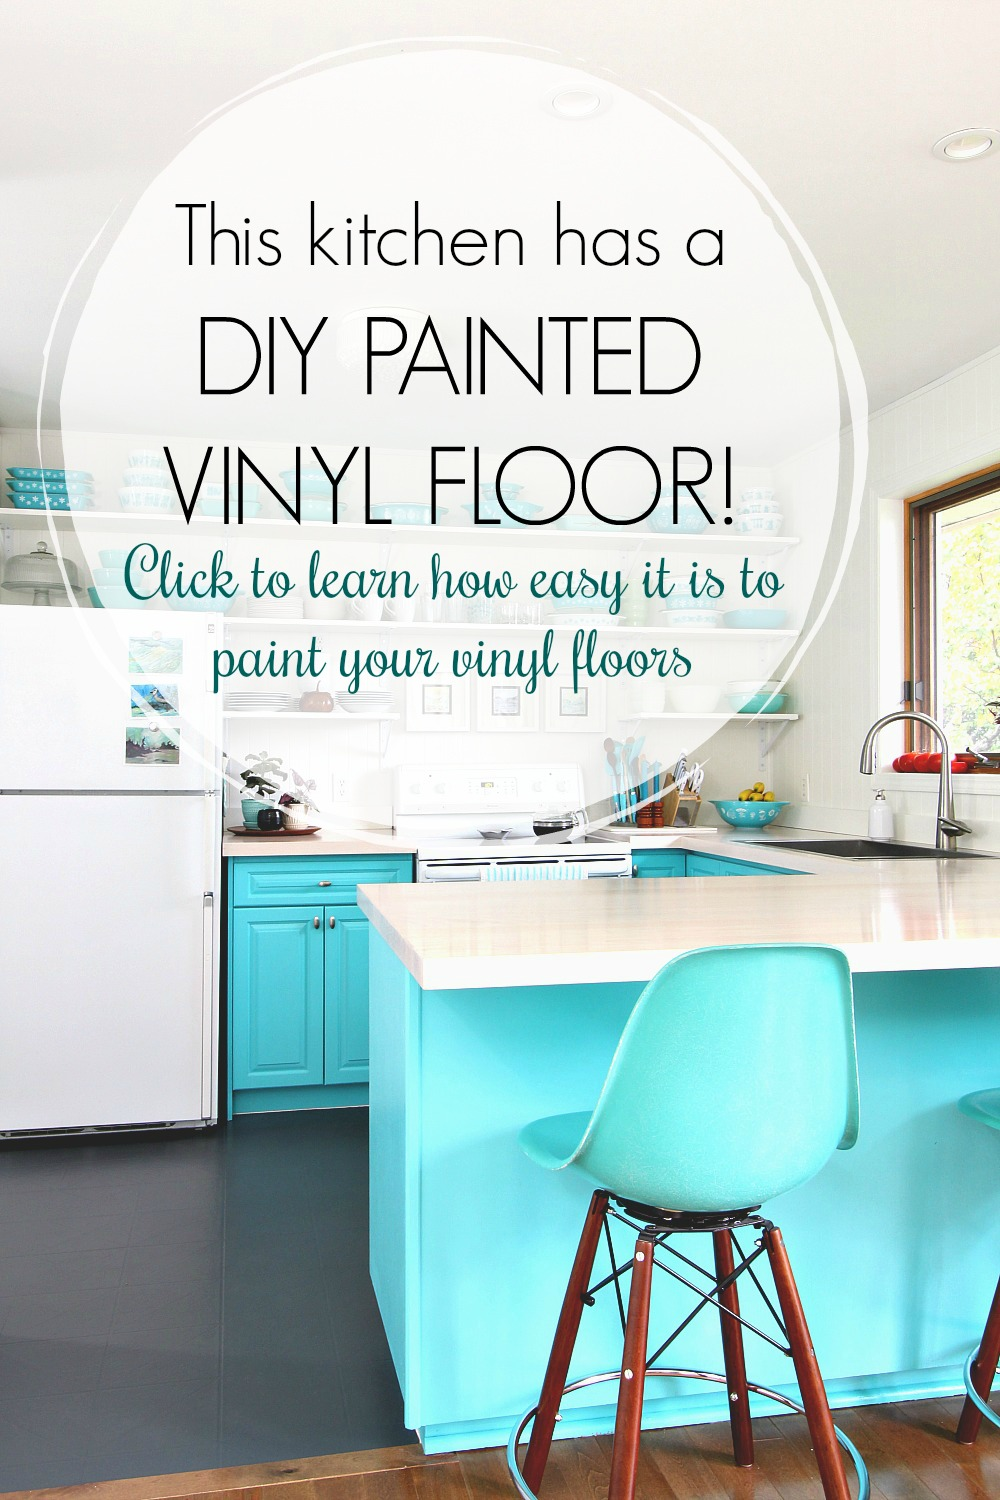 How to Paint a Vinyl Floor | DIY Painted Floors | Dans le